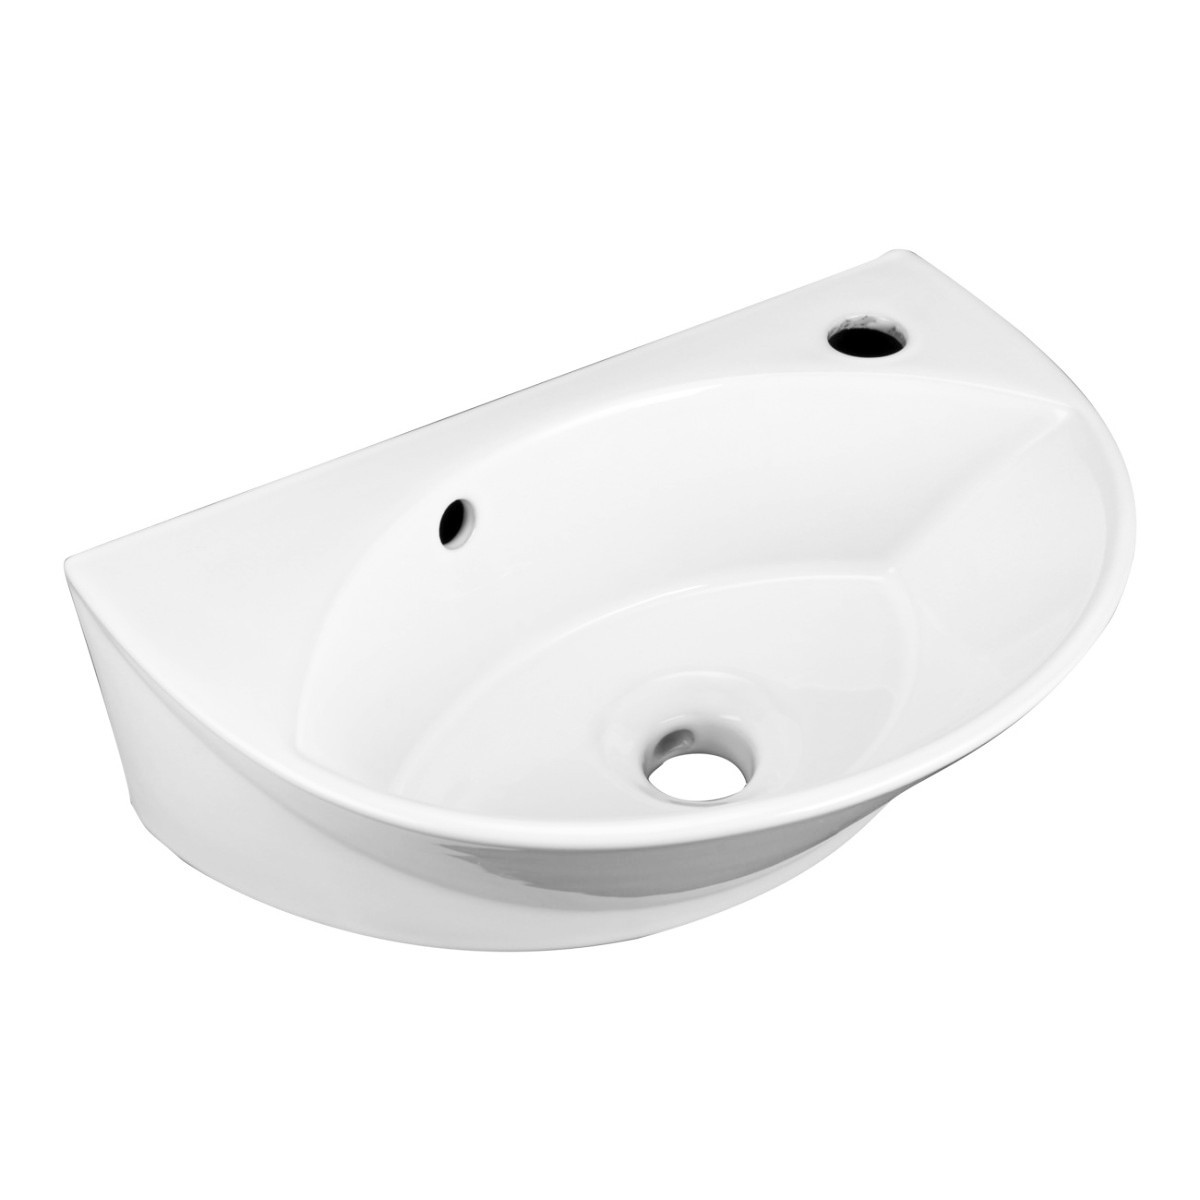 ... sinks itemno 21667 item name small above counter wall mount sink white